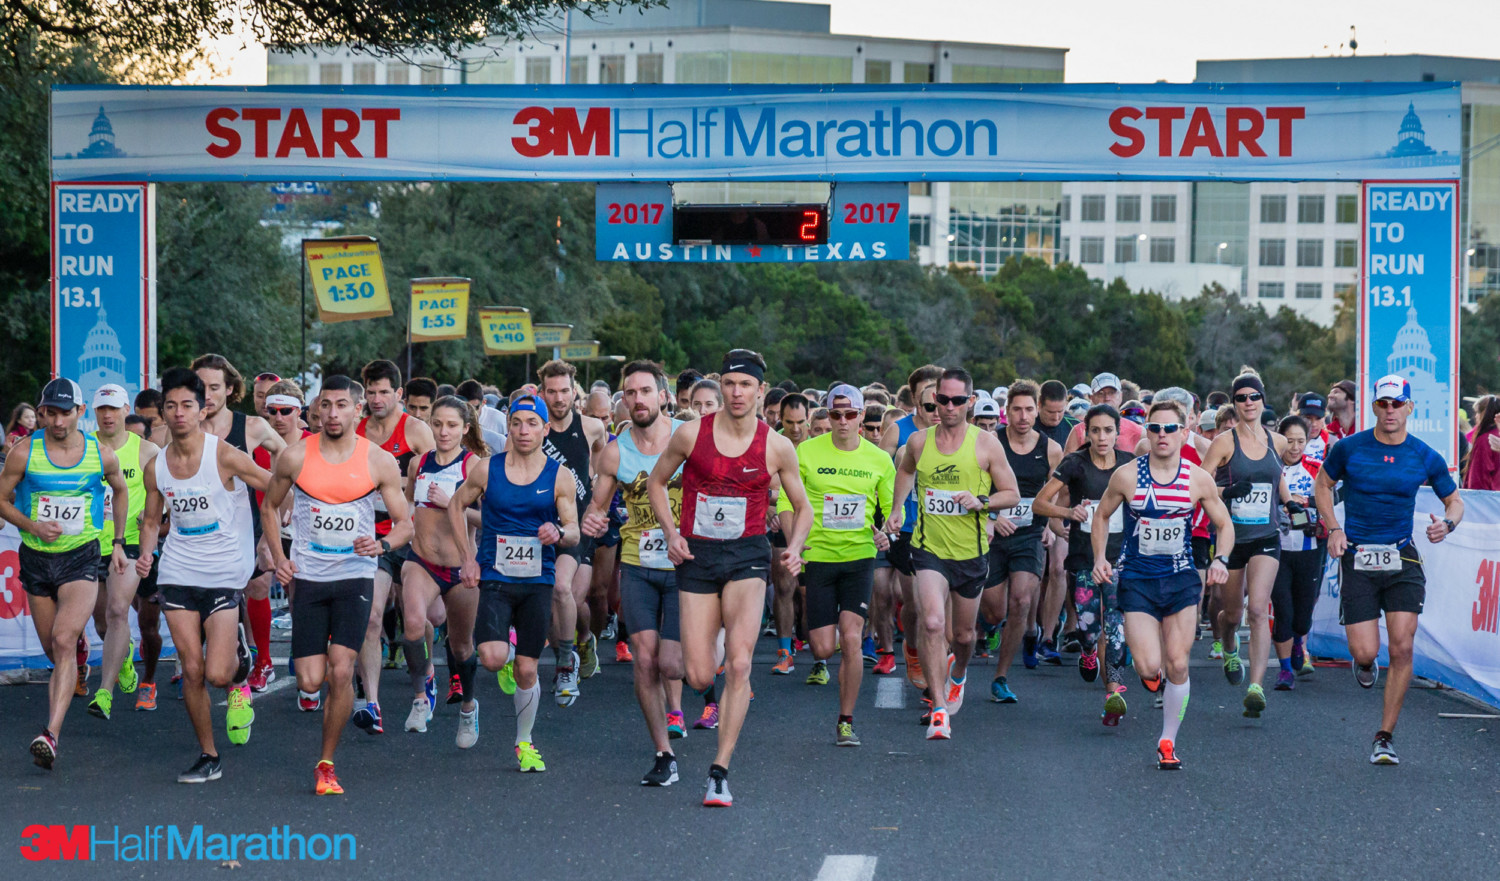 3M Half Marathon is prepared for the Largest Field in 25-Year History